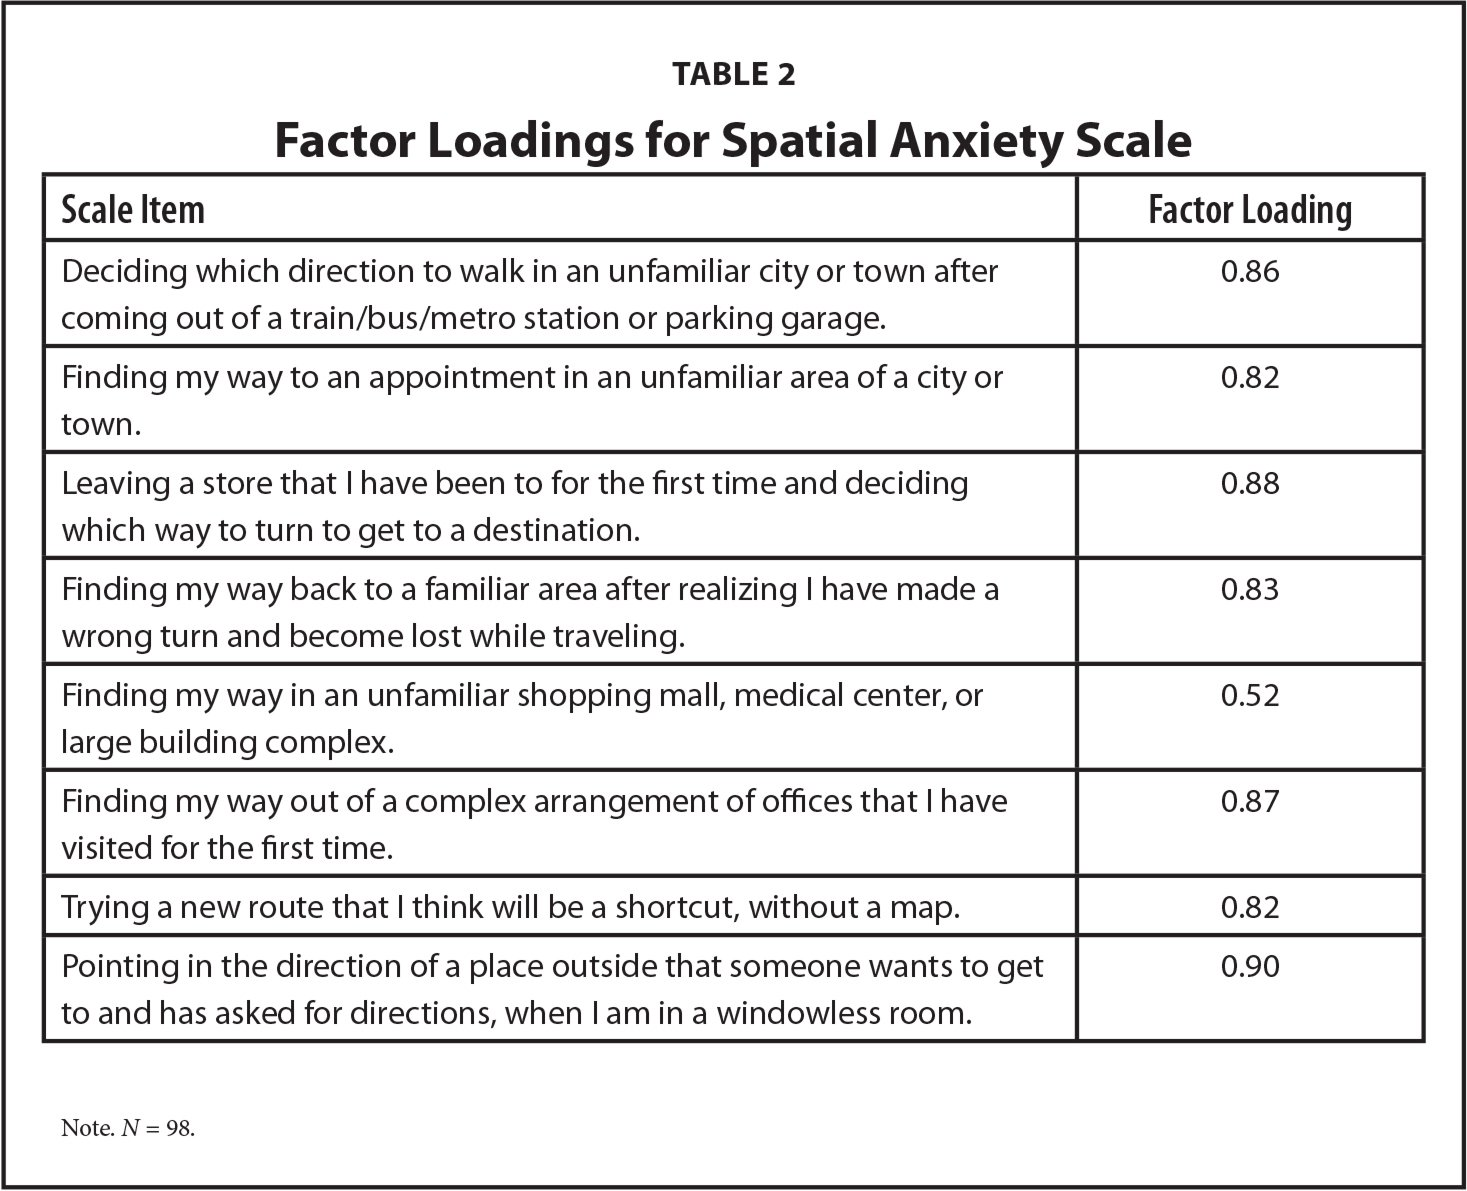 Factor Loadings for Spatial Anxiety Scale